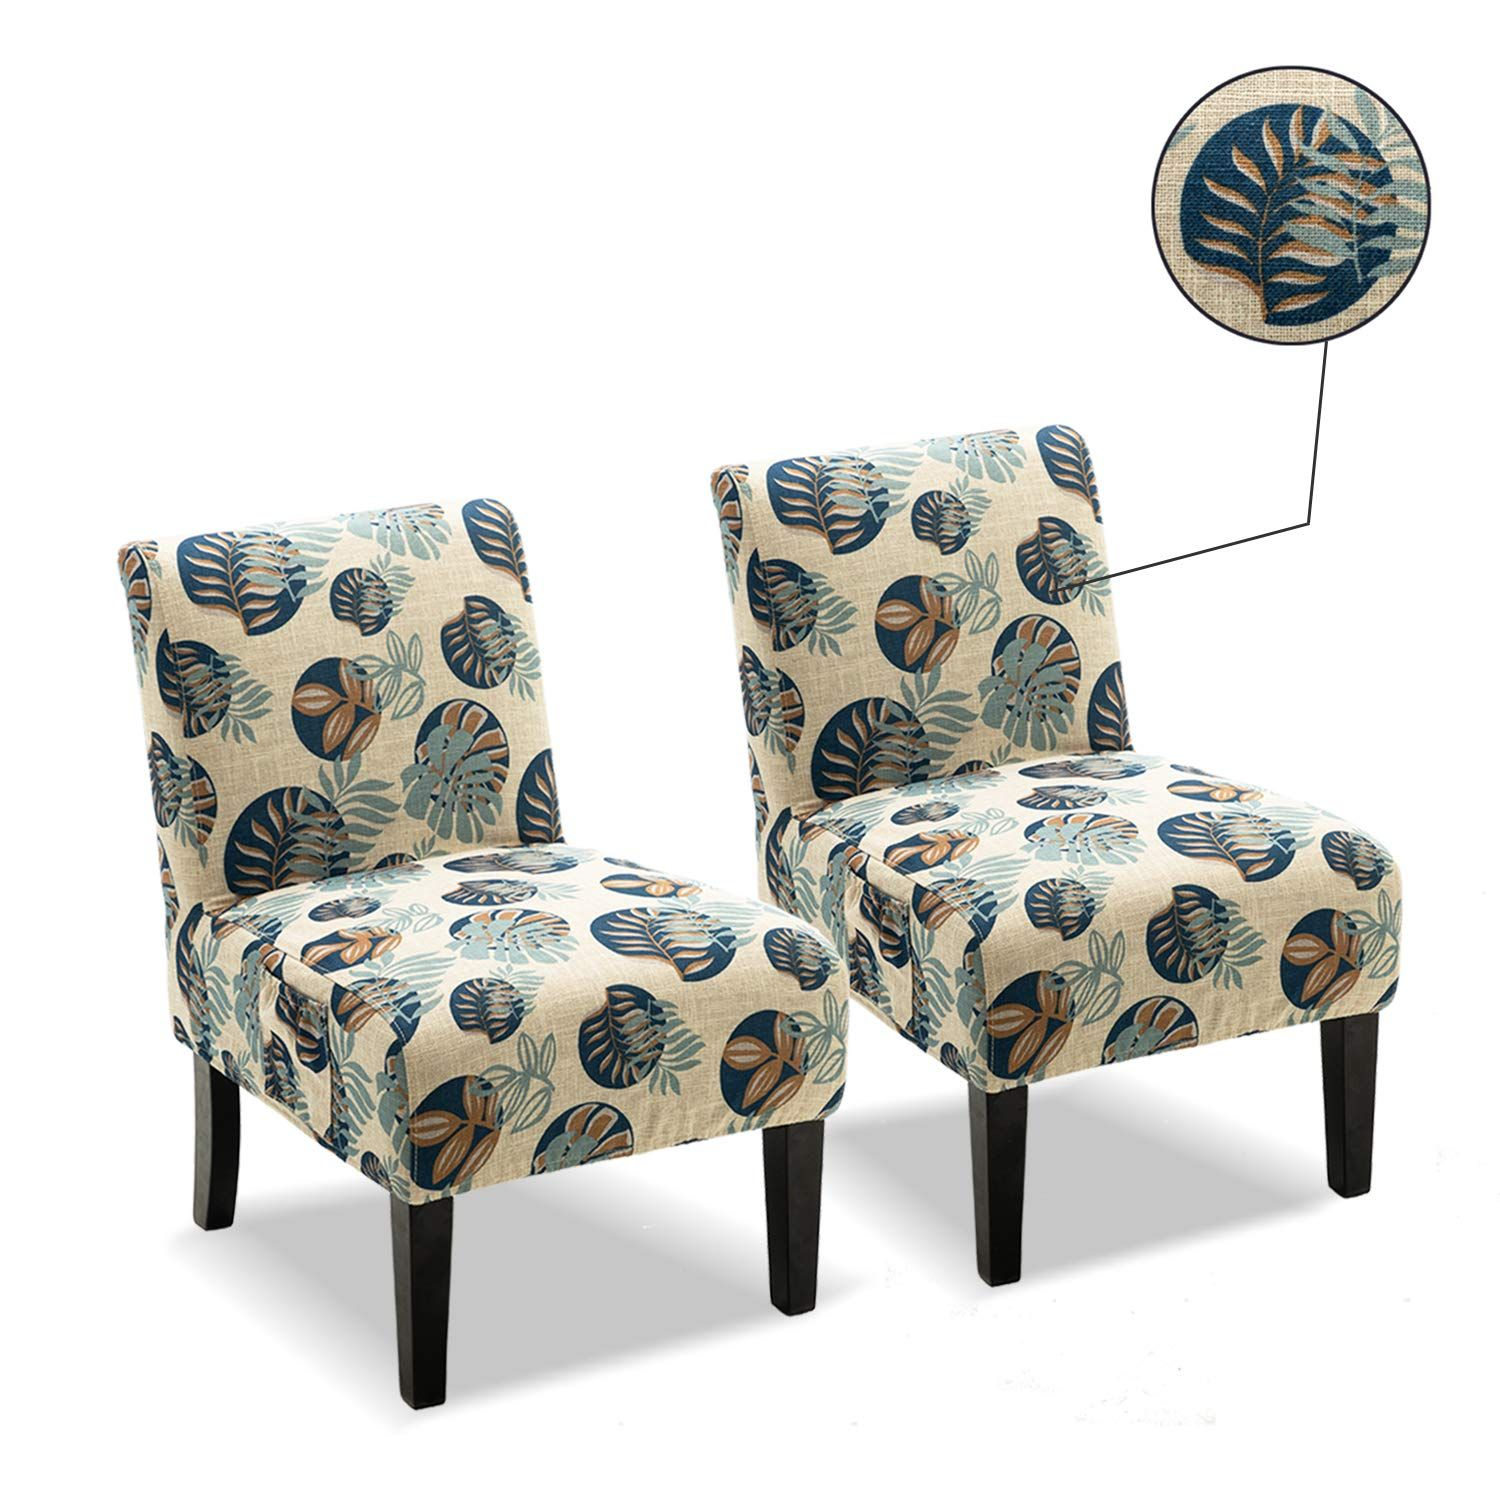 Altrobene Armless Accent Chair Slipcover Sets, 2 Pack